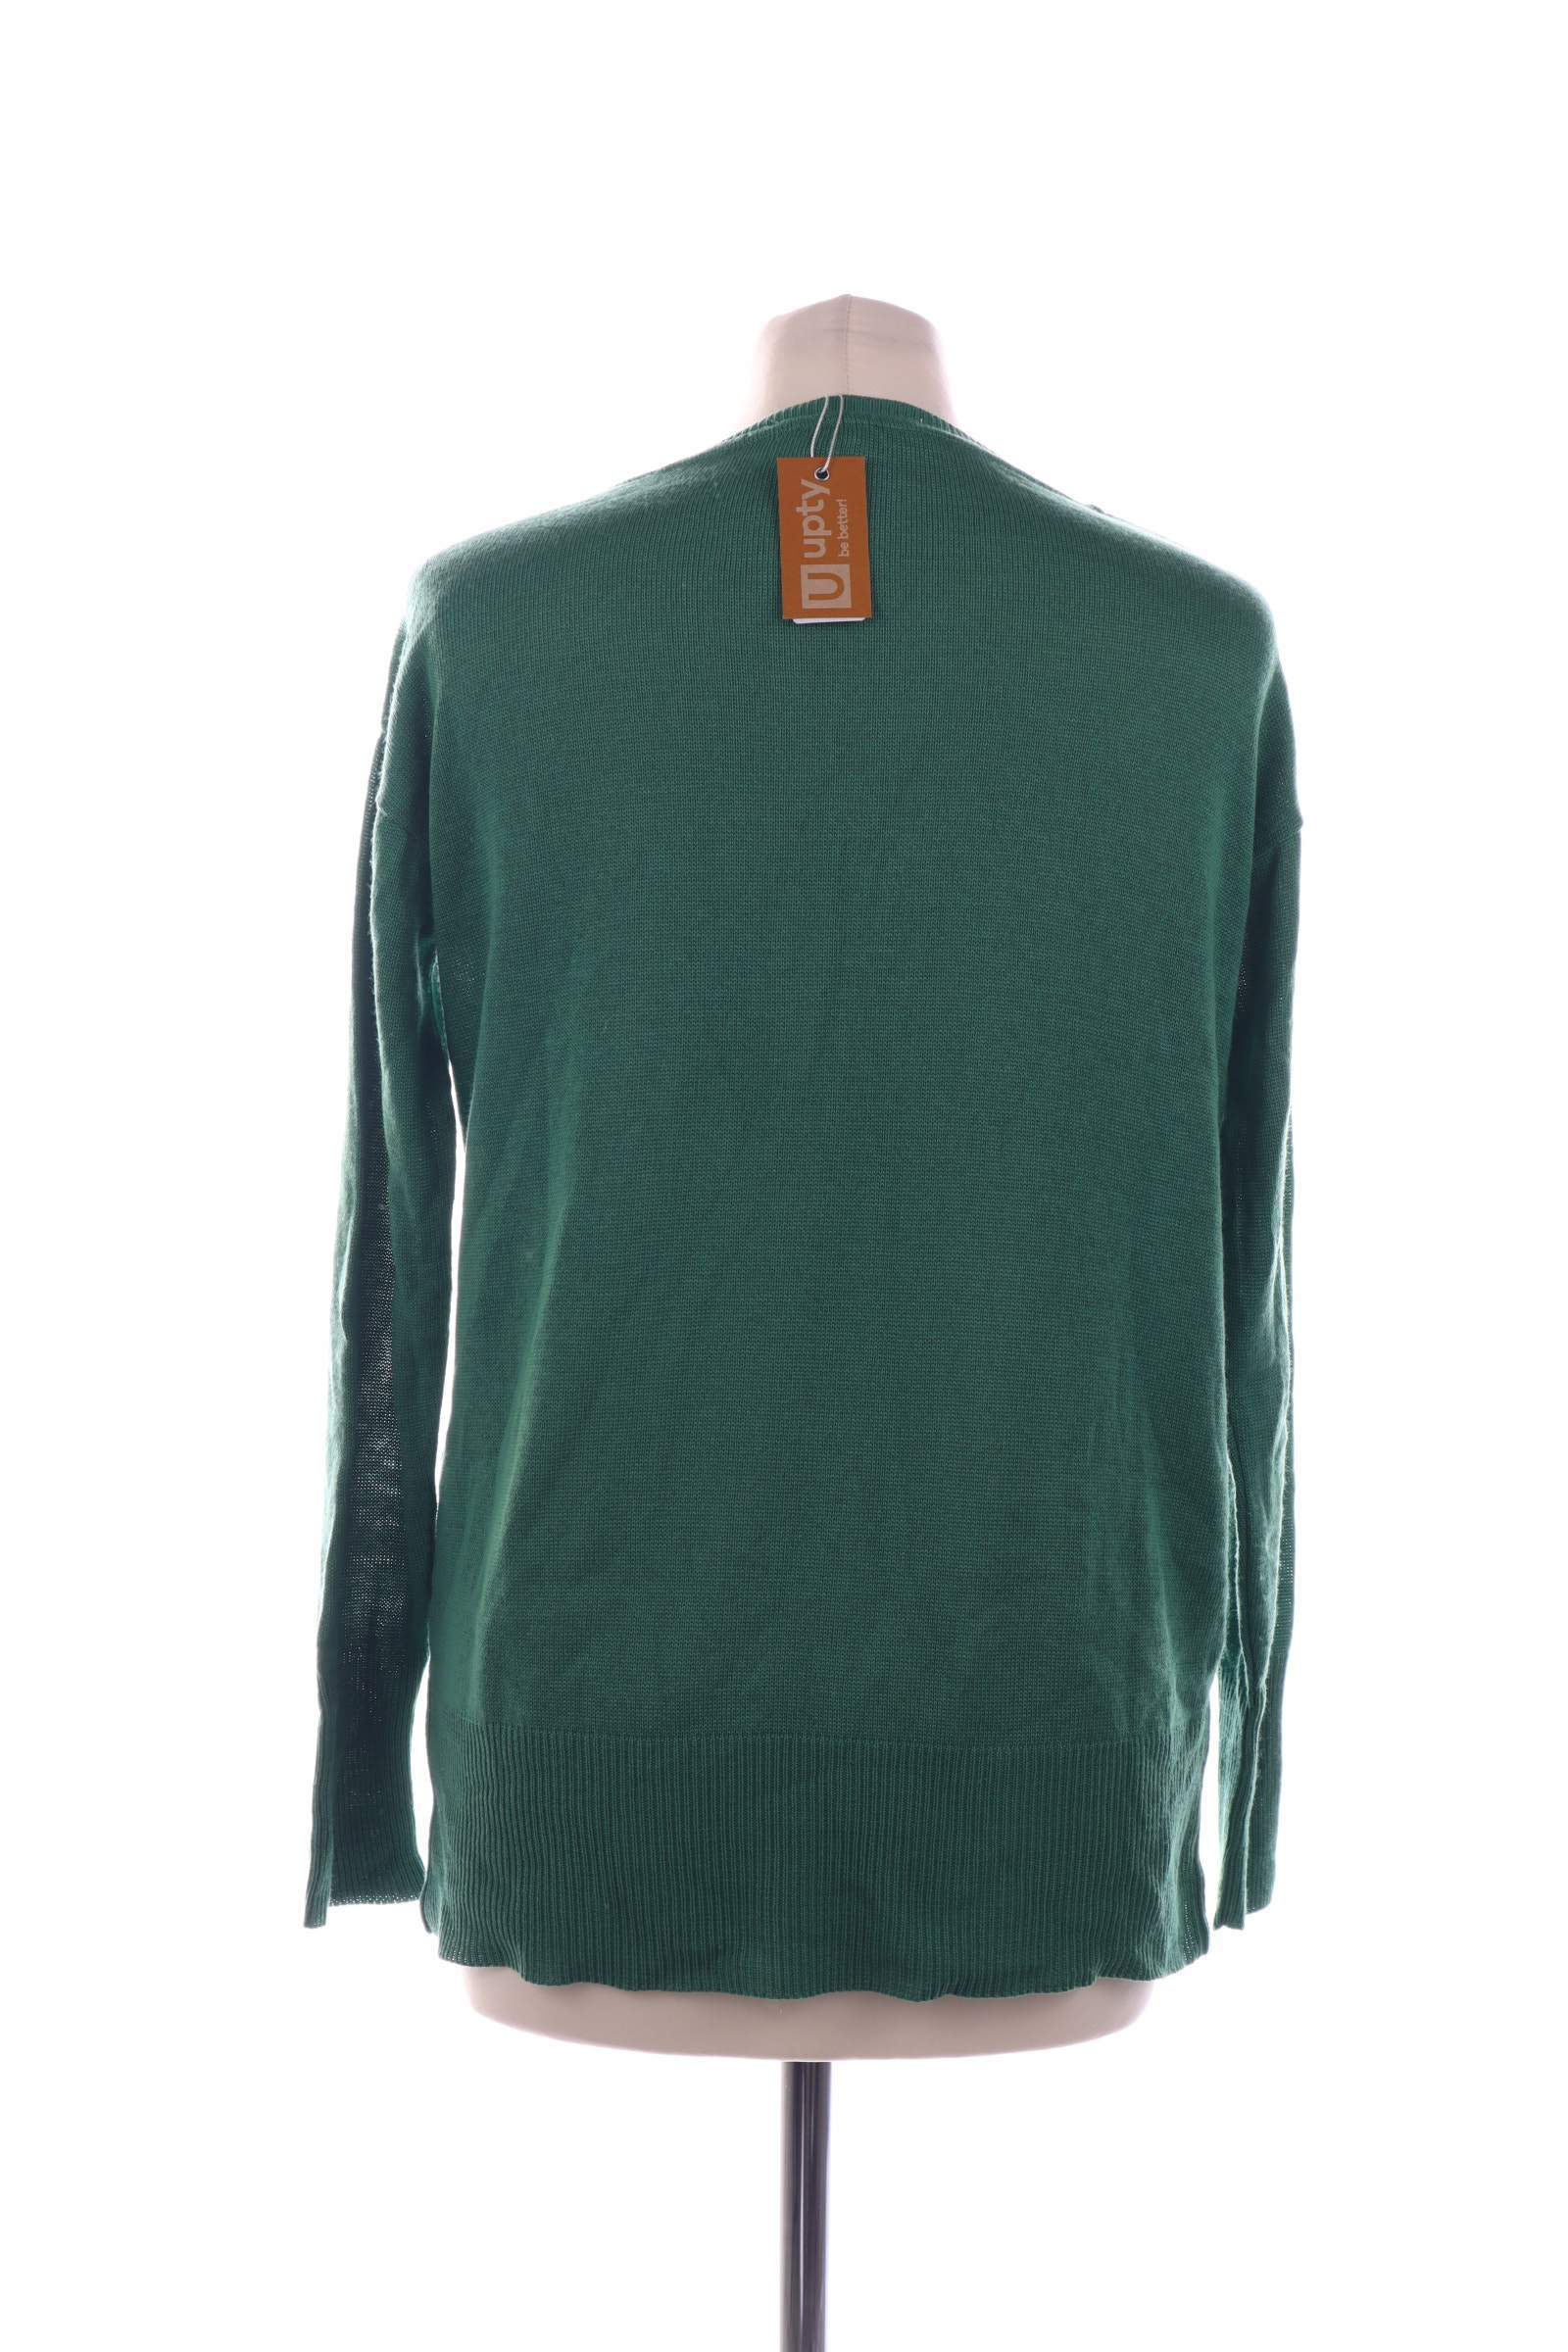 About Green Sweater - upty.store